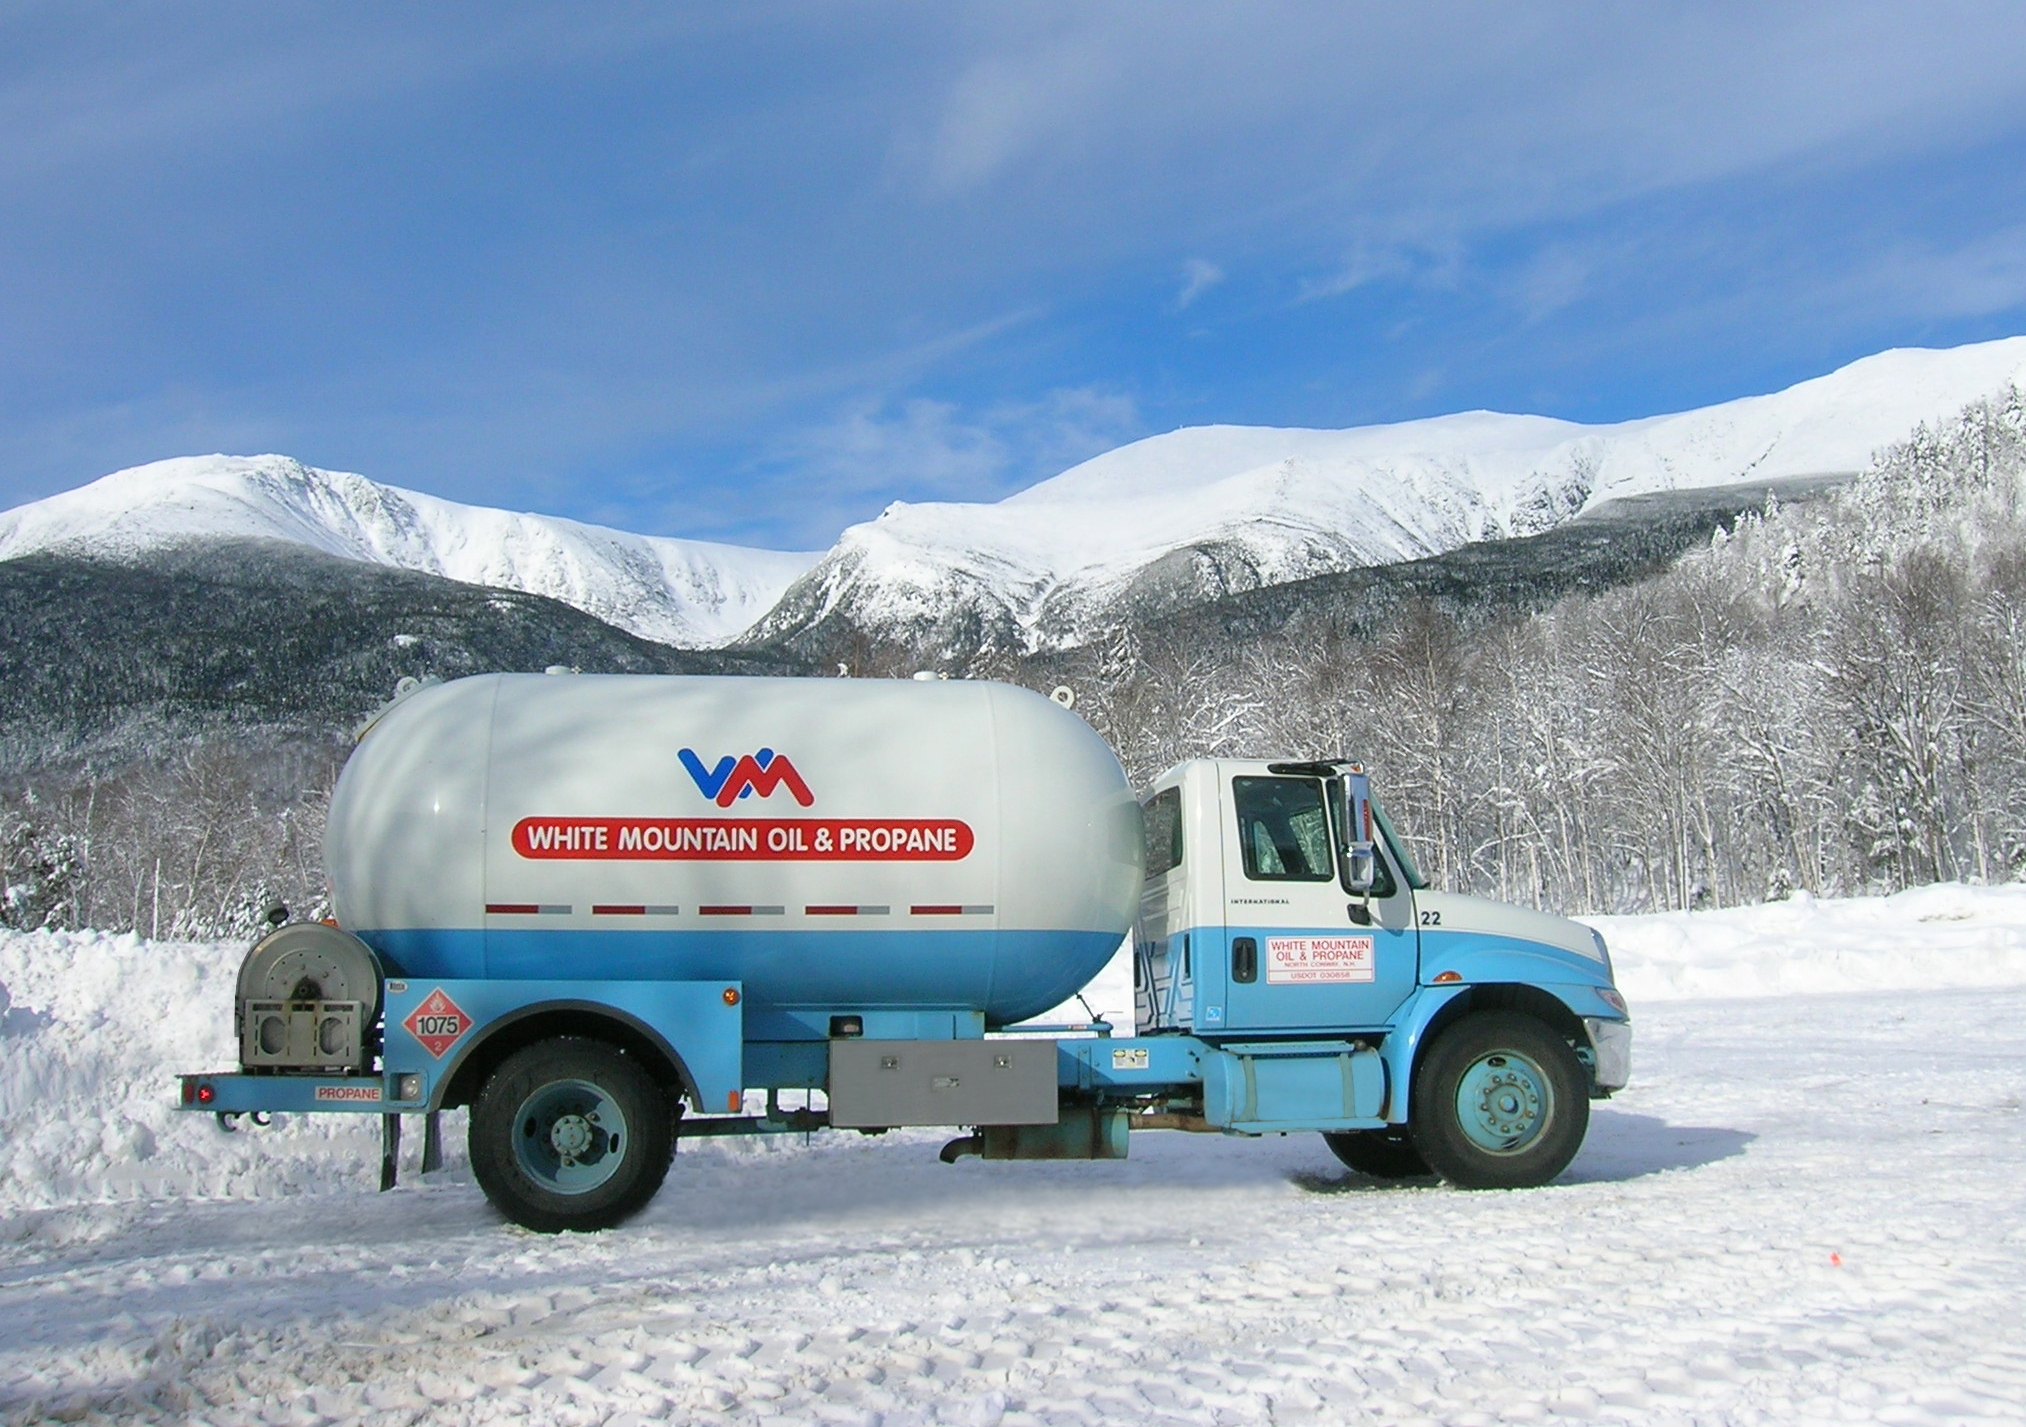 Propane Delivery truck in Pinkham Notch